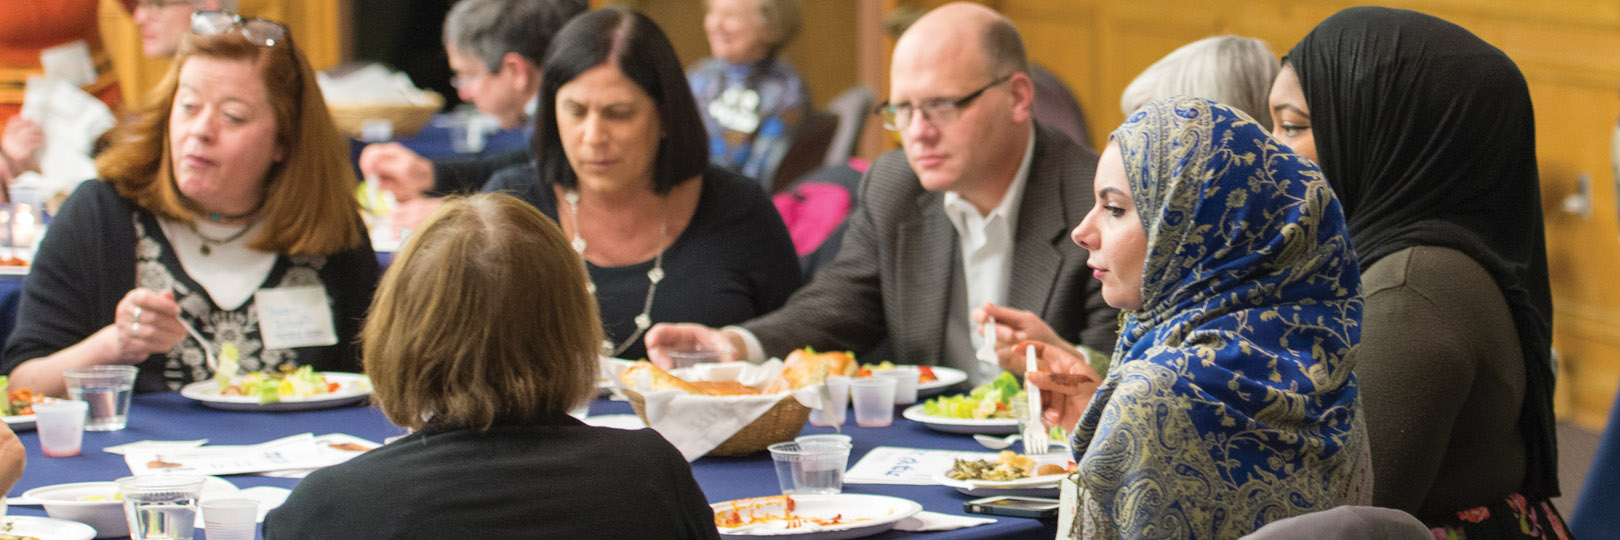 """<a href=""""https://www.templesinaipgh.org/event/IslamicCenterDinner.html""""                                     target="""""""">                                                                 <span class=""""slider_title"""">                                     Shabbat Dinner with the Islamic Center of Pittsburgh, Friday, Feb. 28                                </span>                                                                 </a>                                                                                                                                                                                       <span class=""""slider_description"""">For the fourth year, we are honored to welcome our Muslim friends from the Islamic Center of Pittsburgh to share food and prayers with us.</span>                                                                                     <a href=""""https://www.templesinaipgh.org/event/IslamicCenterDinner.html"""" class=""""slider_link""""                             target="""""""">                             Register Today                            </a>"""